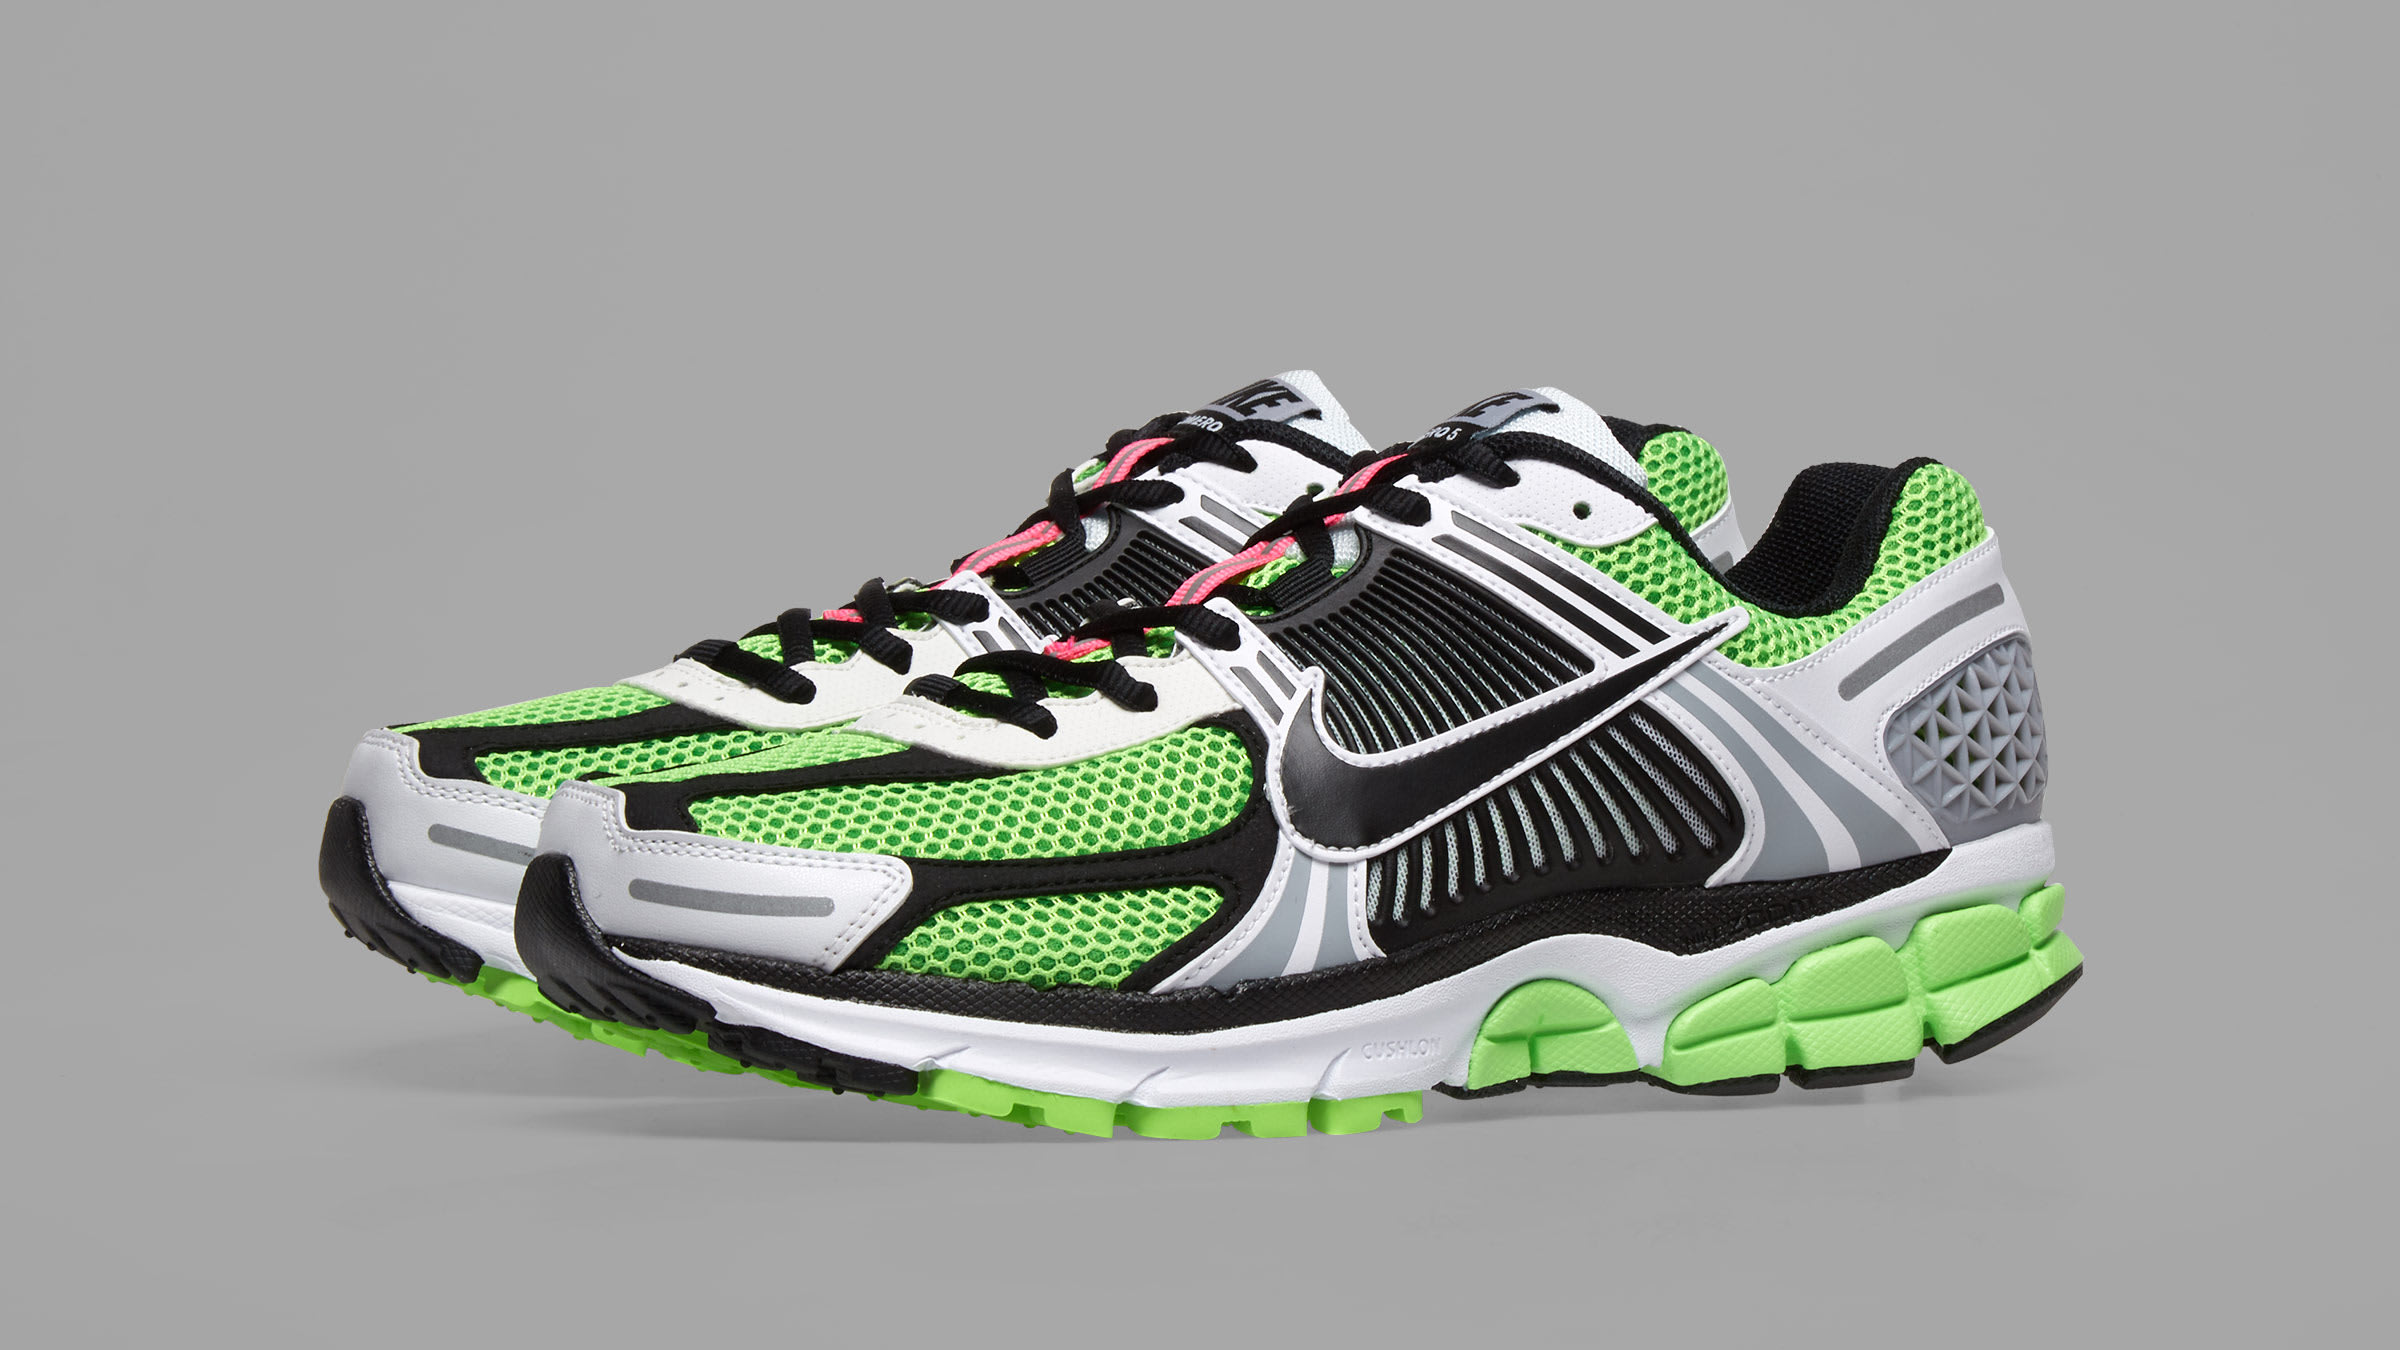 principal Dramaturgo salario  END. Features | Nike Zoom Vomero 5 SE SP - Register Now on END. Launches